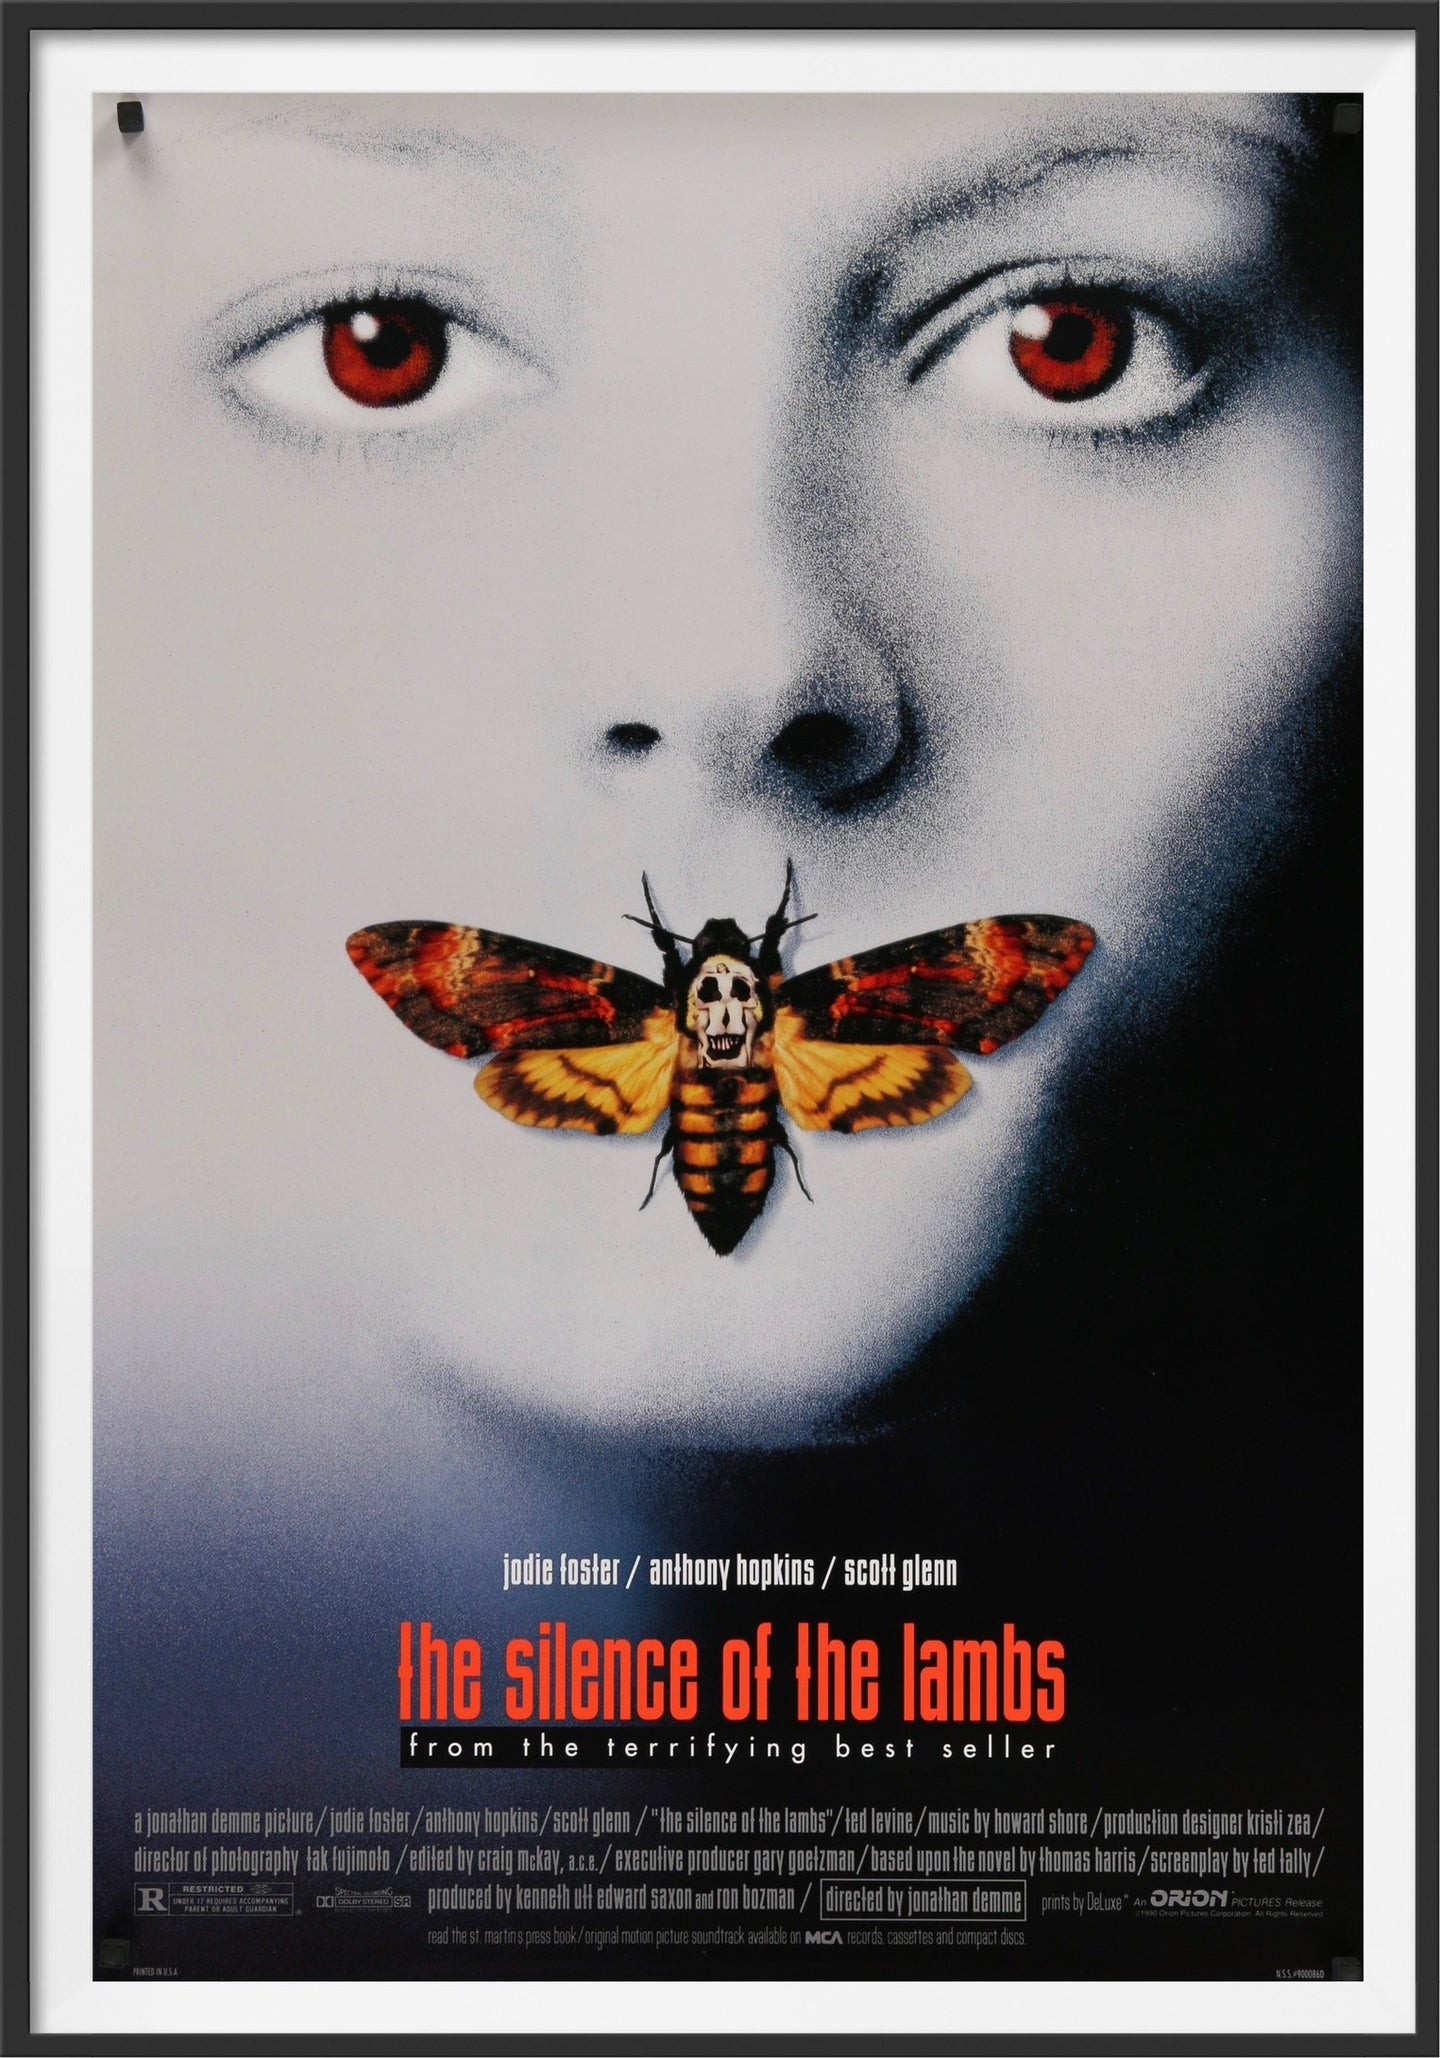 An original movie poster for the film The Silence of the Lambs